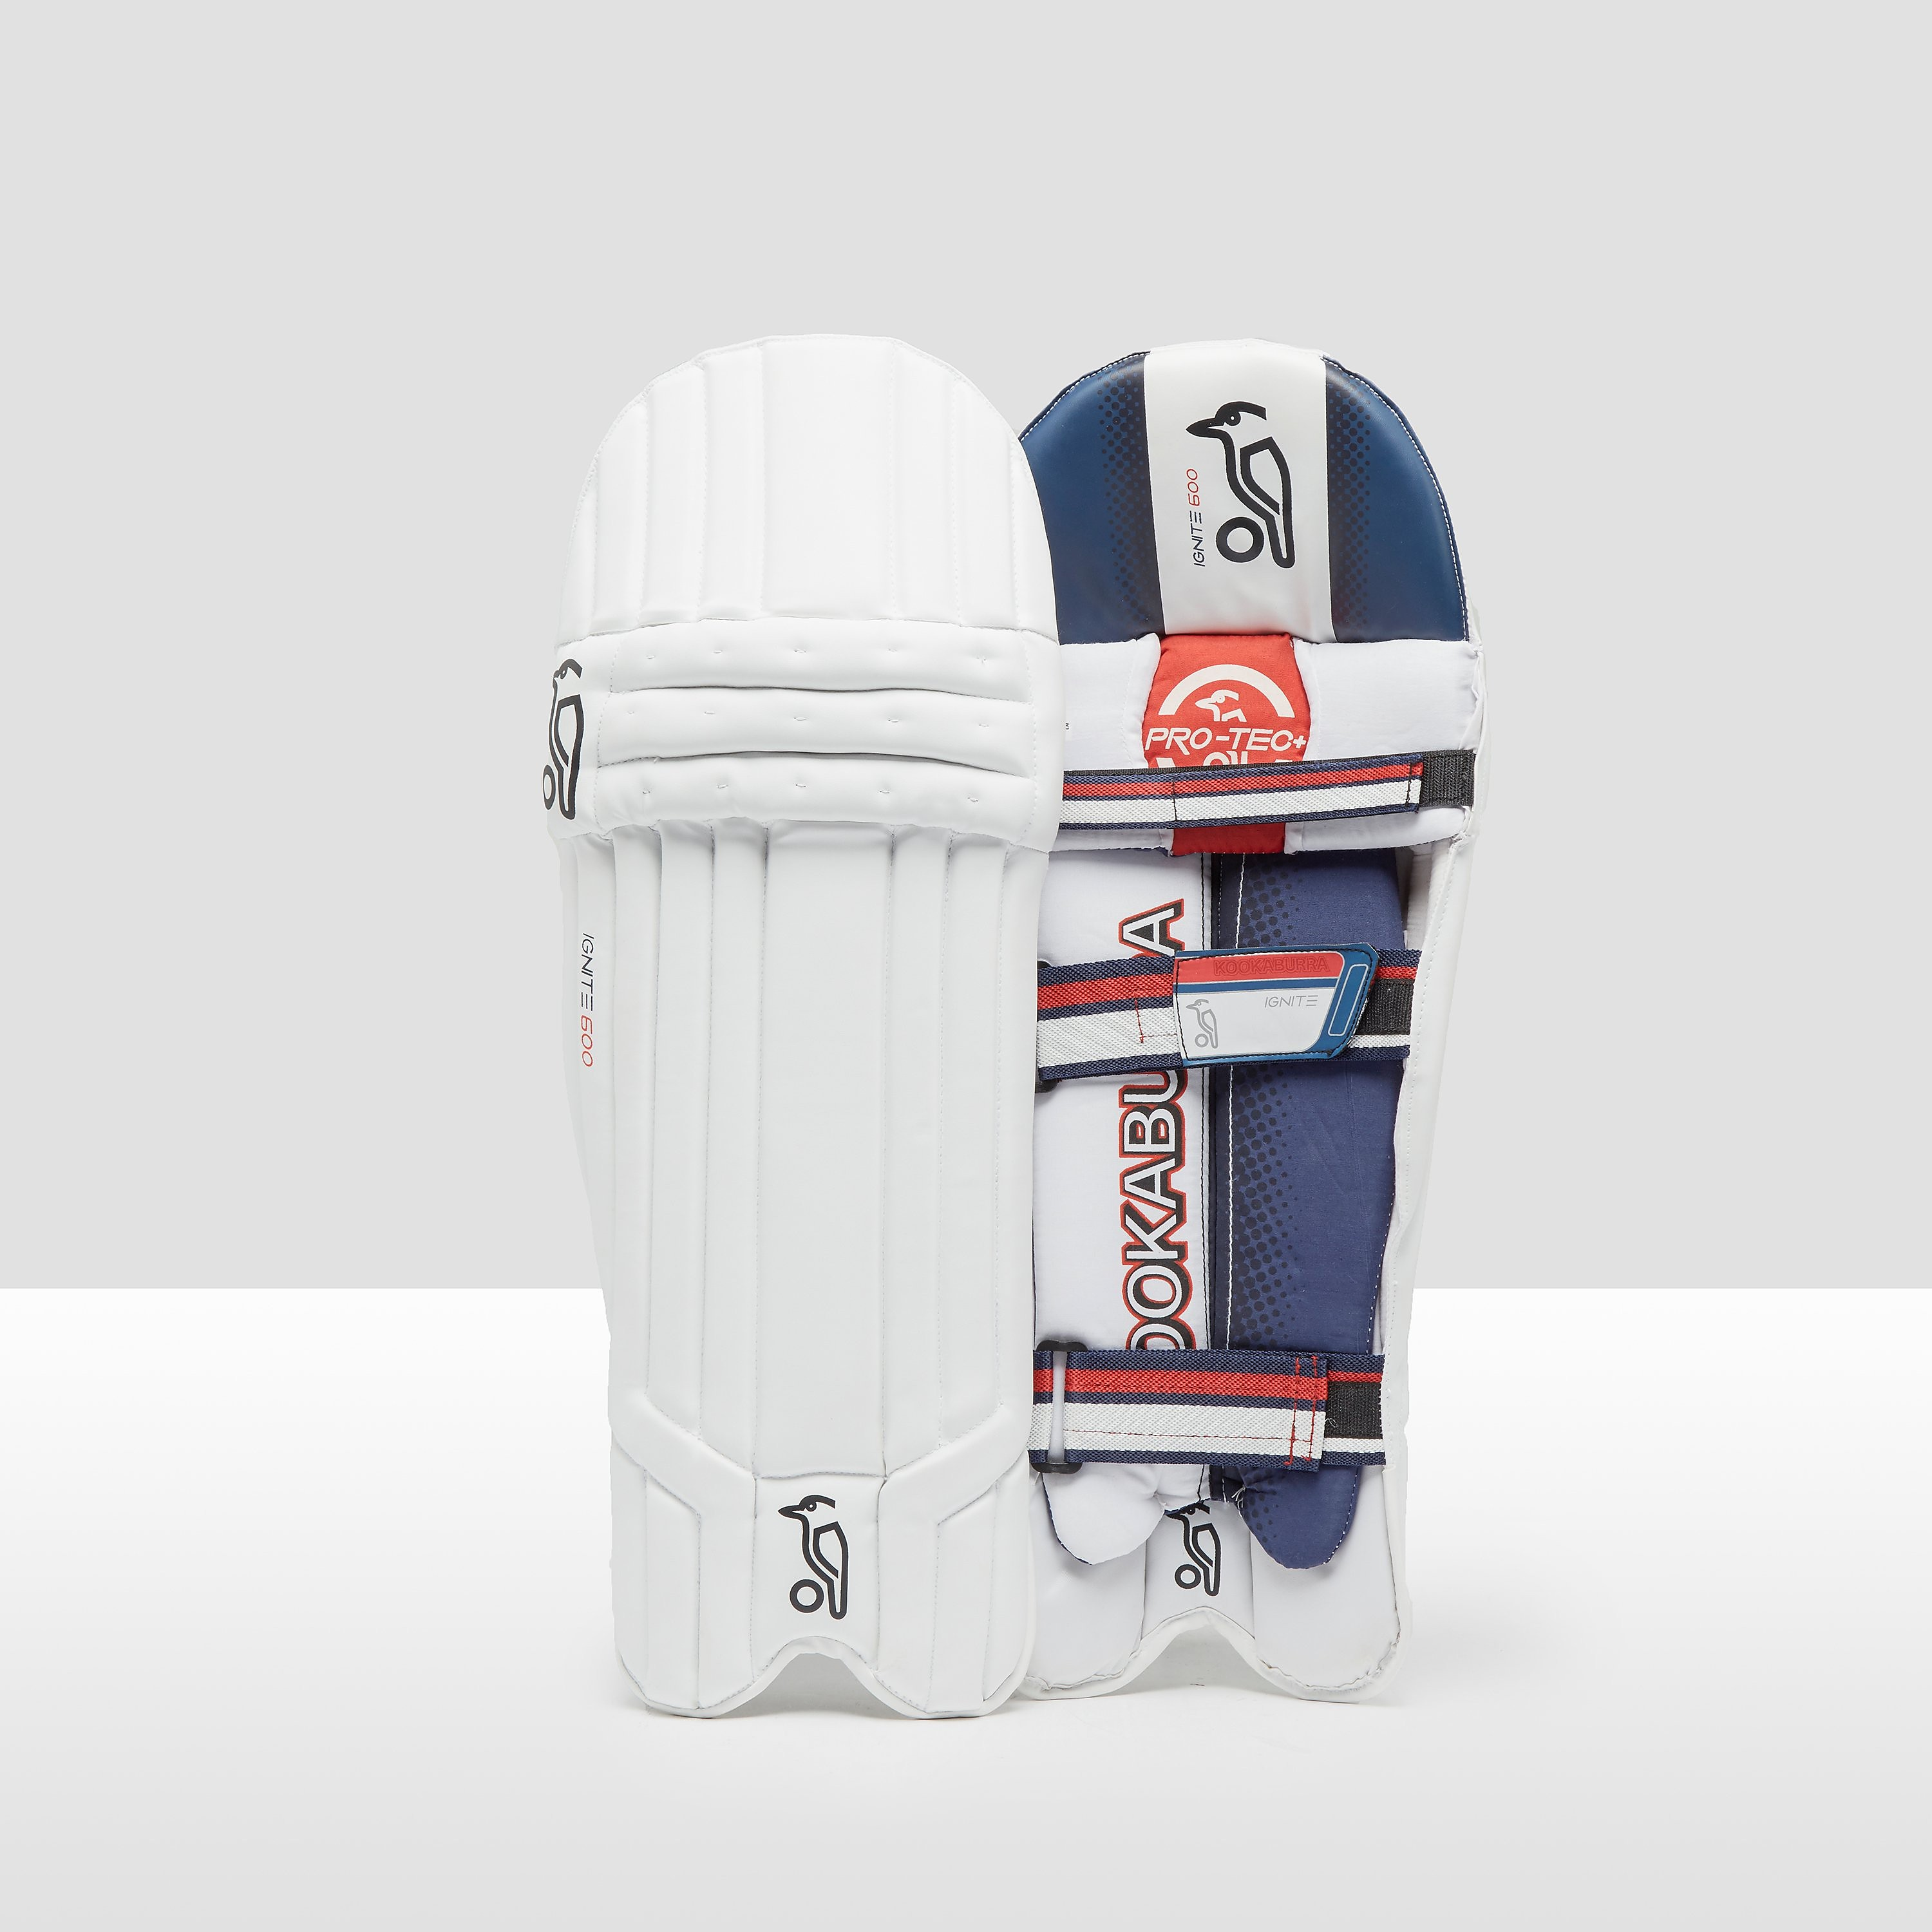 Kookaburra IGNITE 600 BATTING